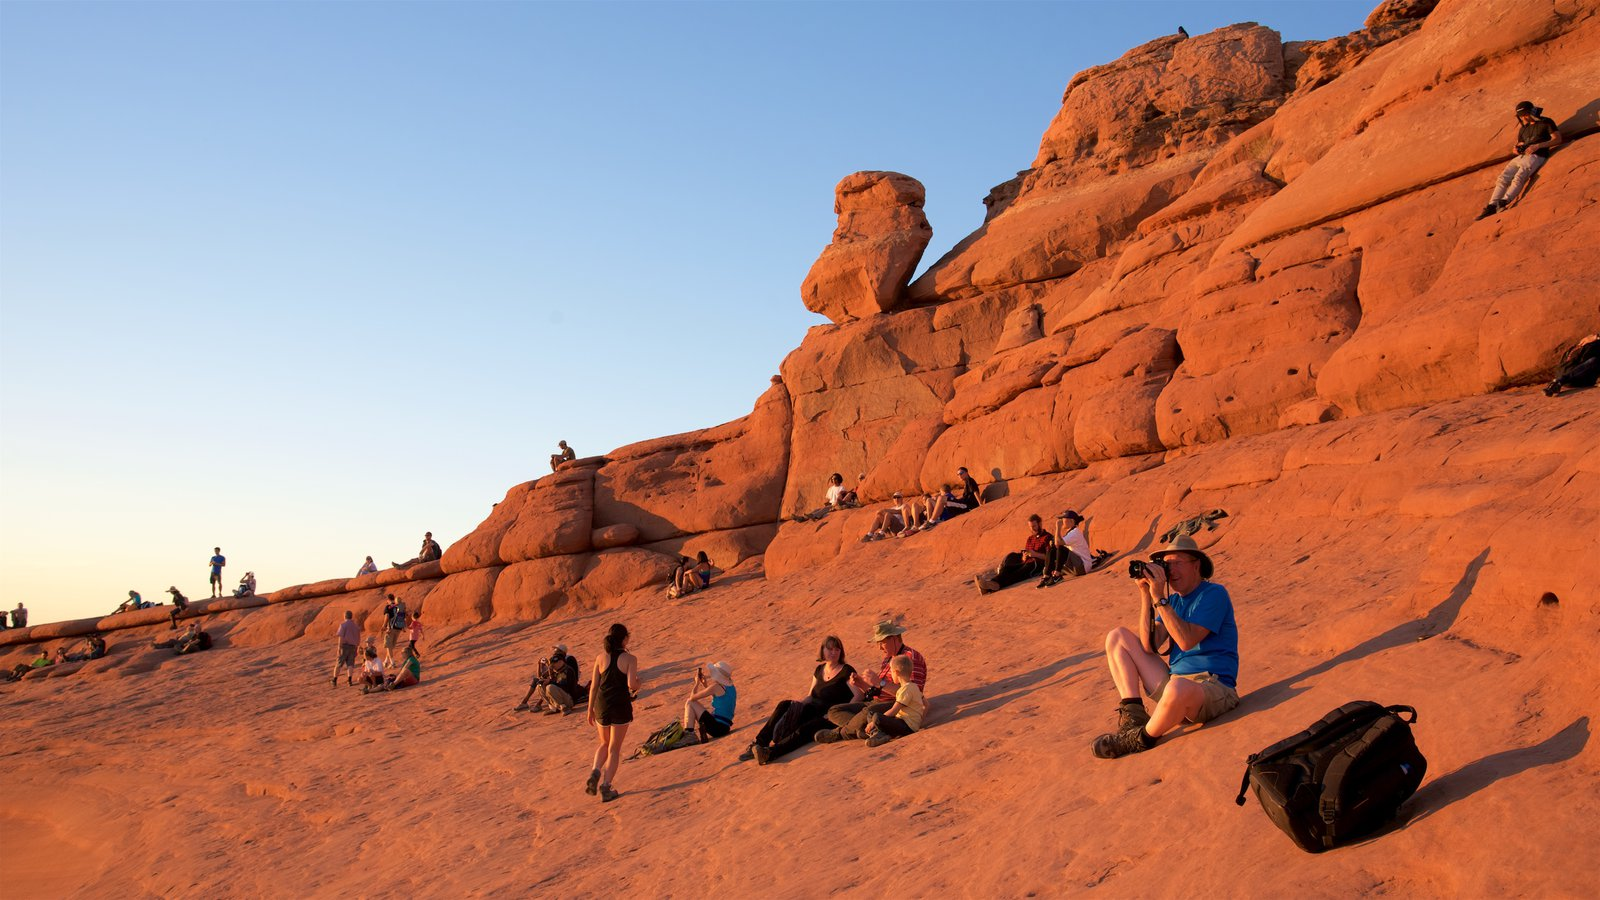 Arches National Park, Utah, USA - Iconic Delicate Arch At Sunset With  Moving Shadow And Blue Sky - Timelapse With Zoom Out - August 2013 Stock  Footage Video ...